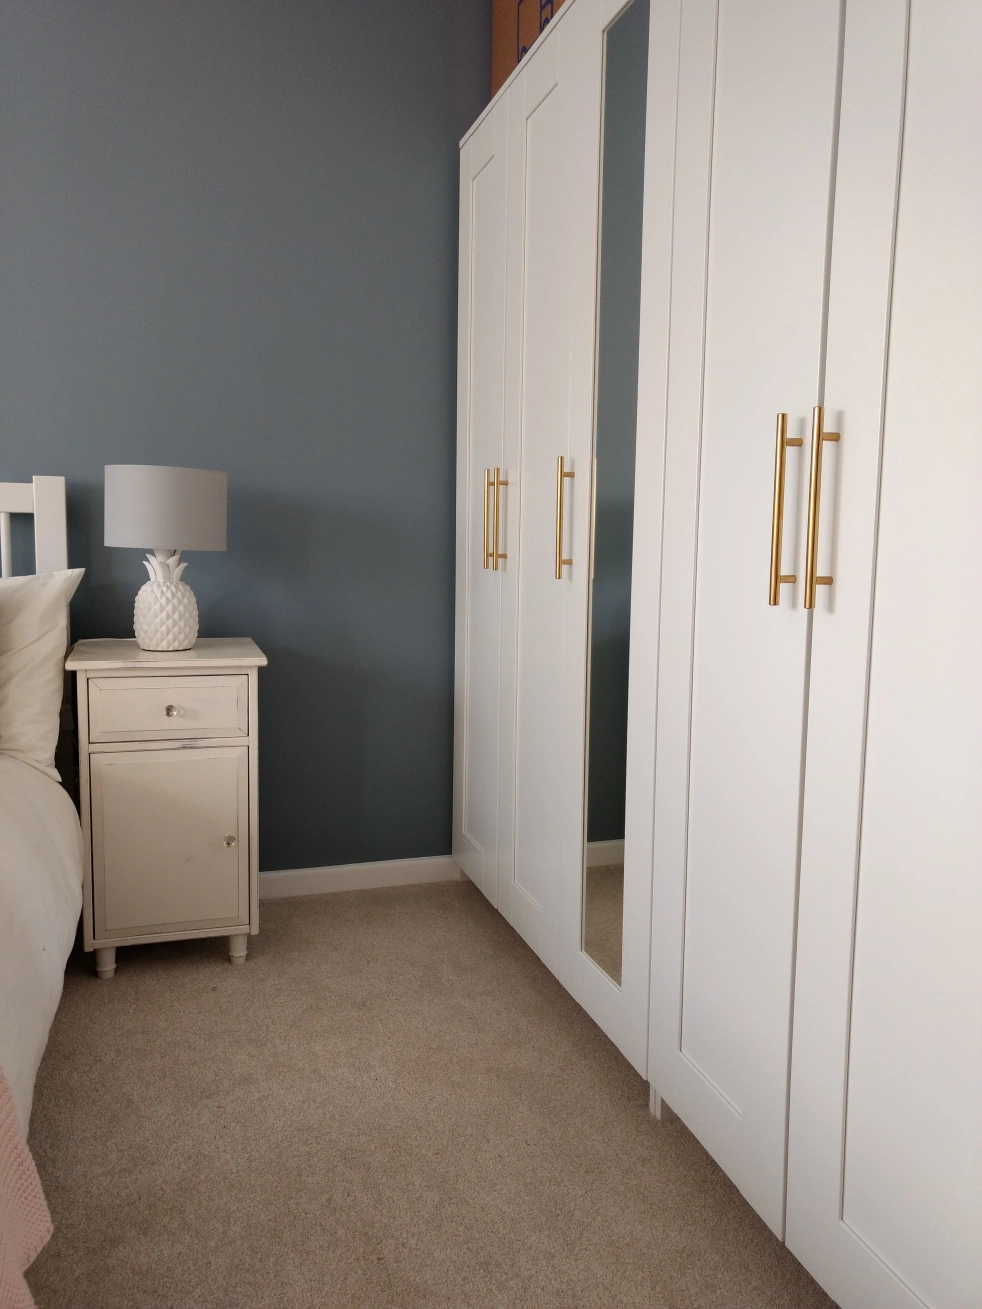 Room Reveal: Masterbed and an awesome Ikea hack to luxe things up a bit